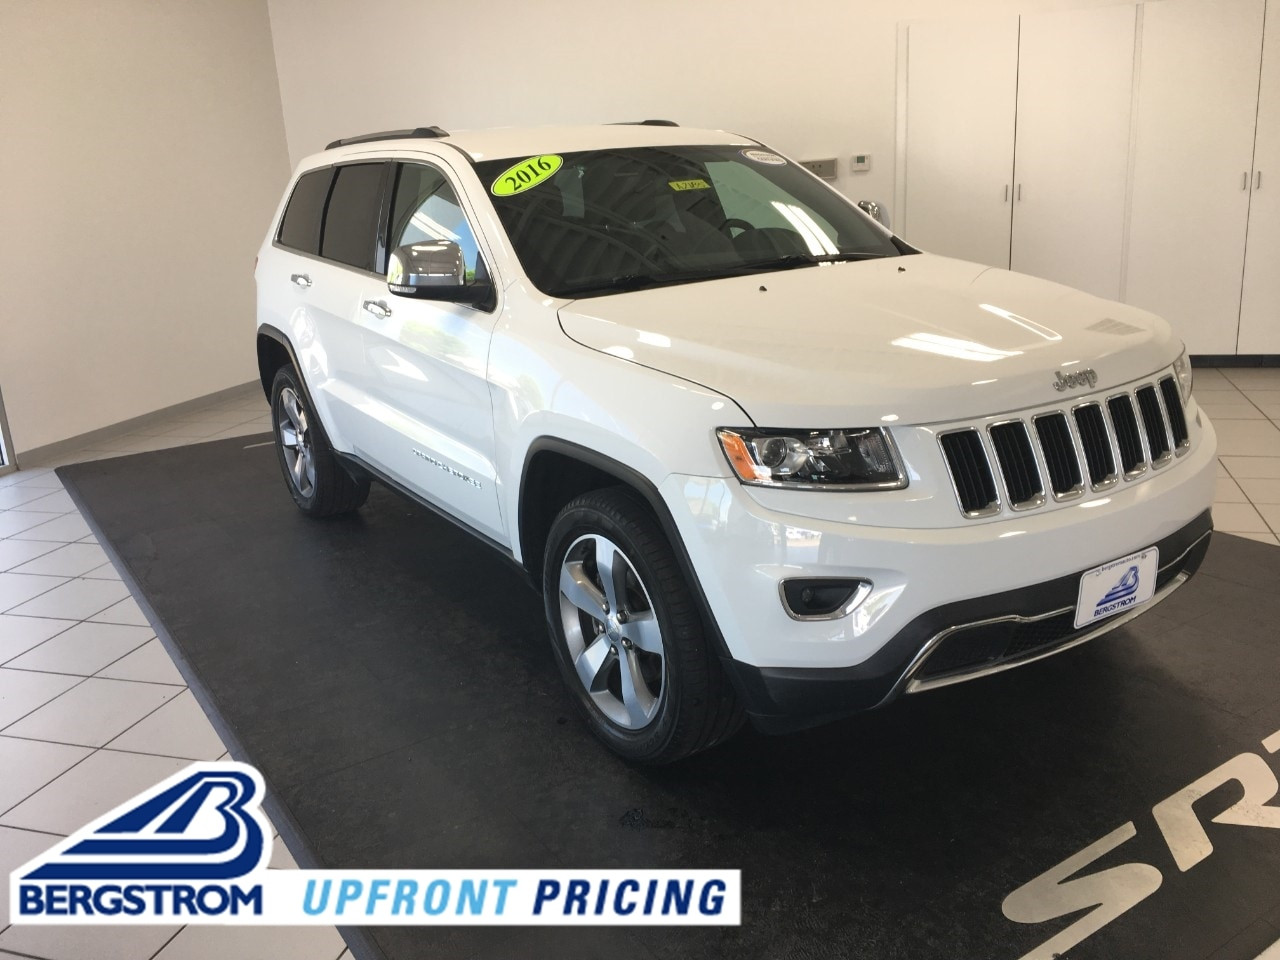 2016 Jeep Grand Cherokee Limited 4x4 SUV A2185